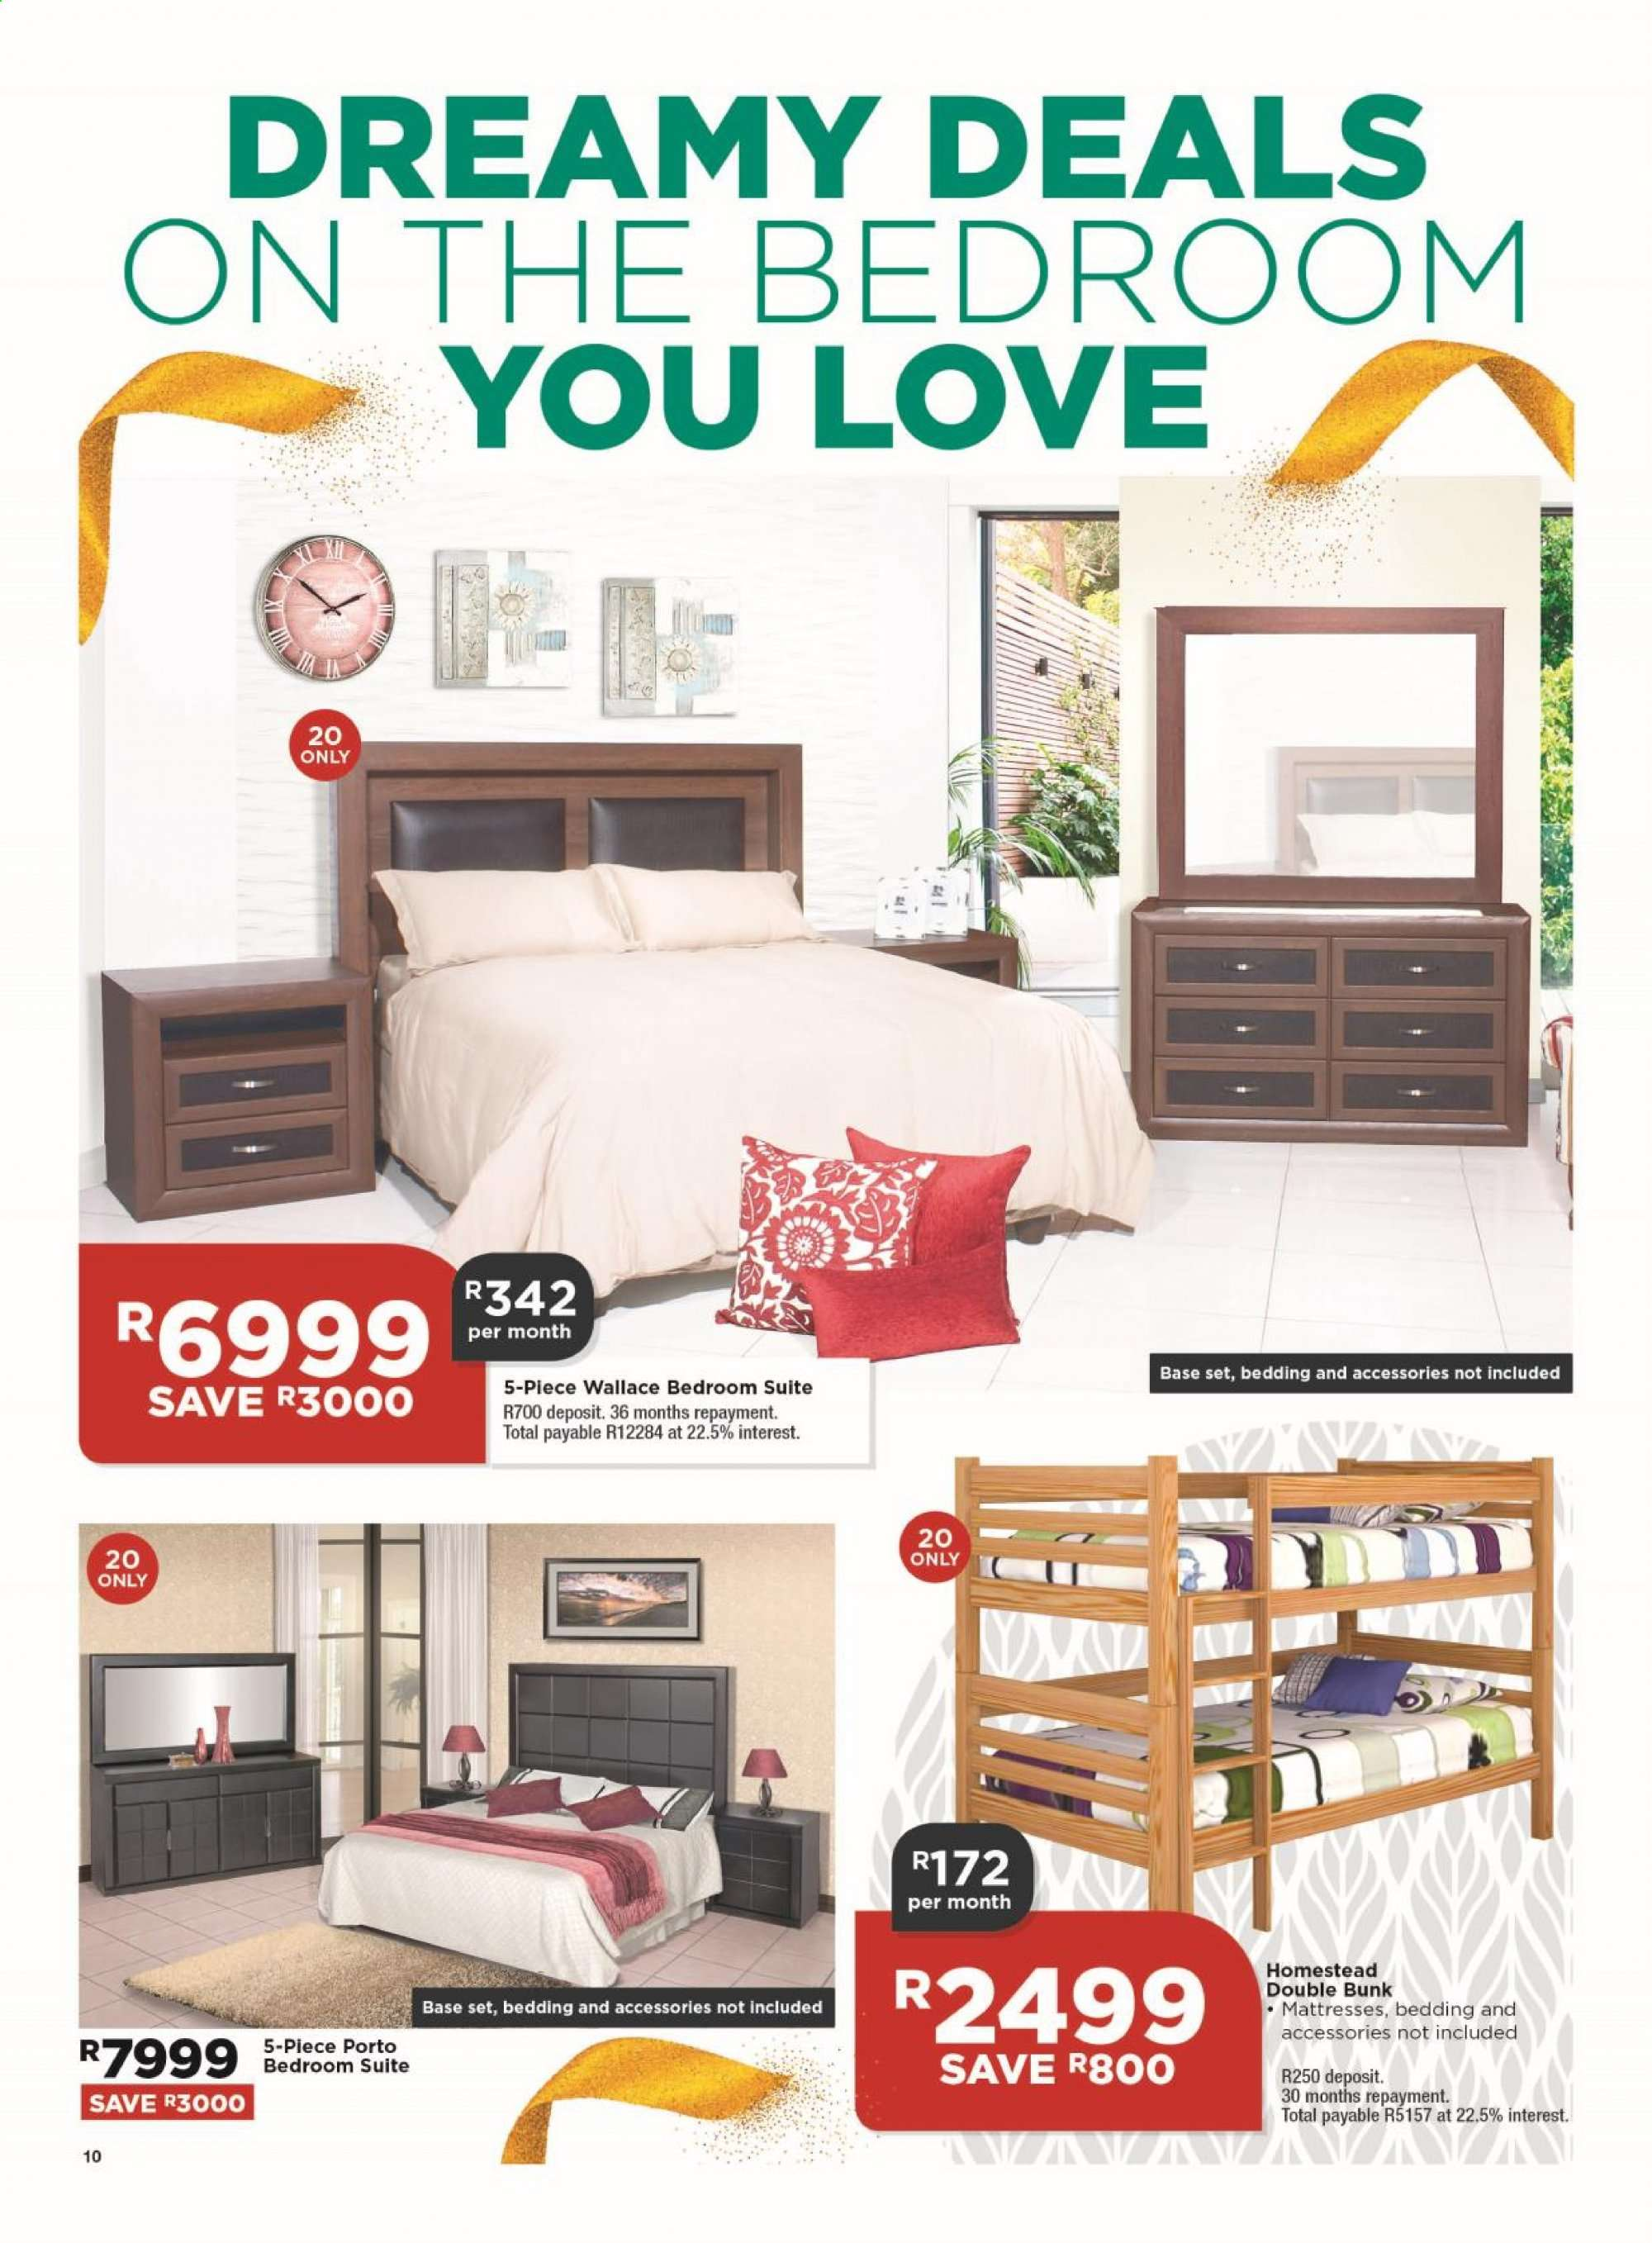 House & Home catalogue  - 08.29.2019 - 09.01.2019. Page 10.